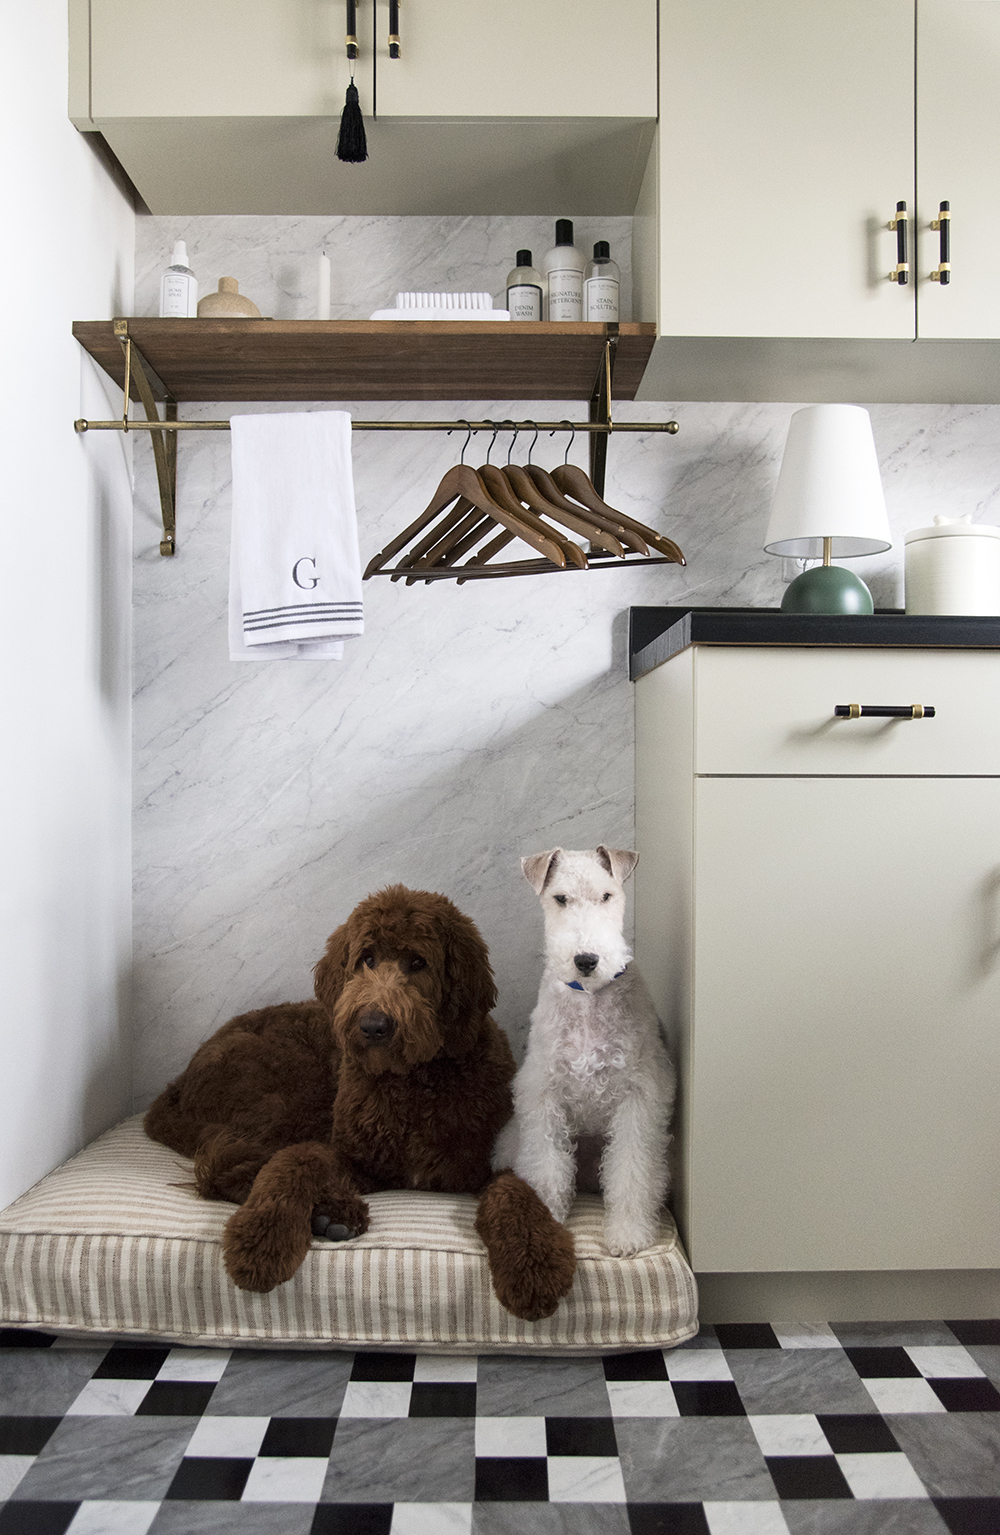 10 Dog Posts for Pet Lovers - roomfortuesday.com